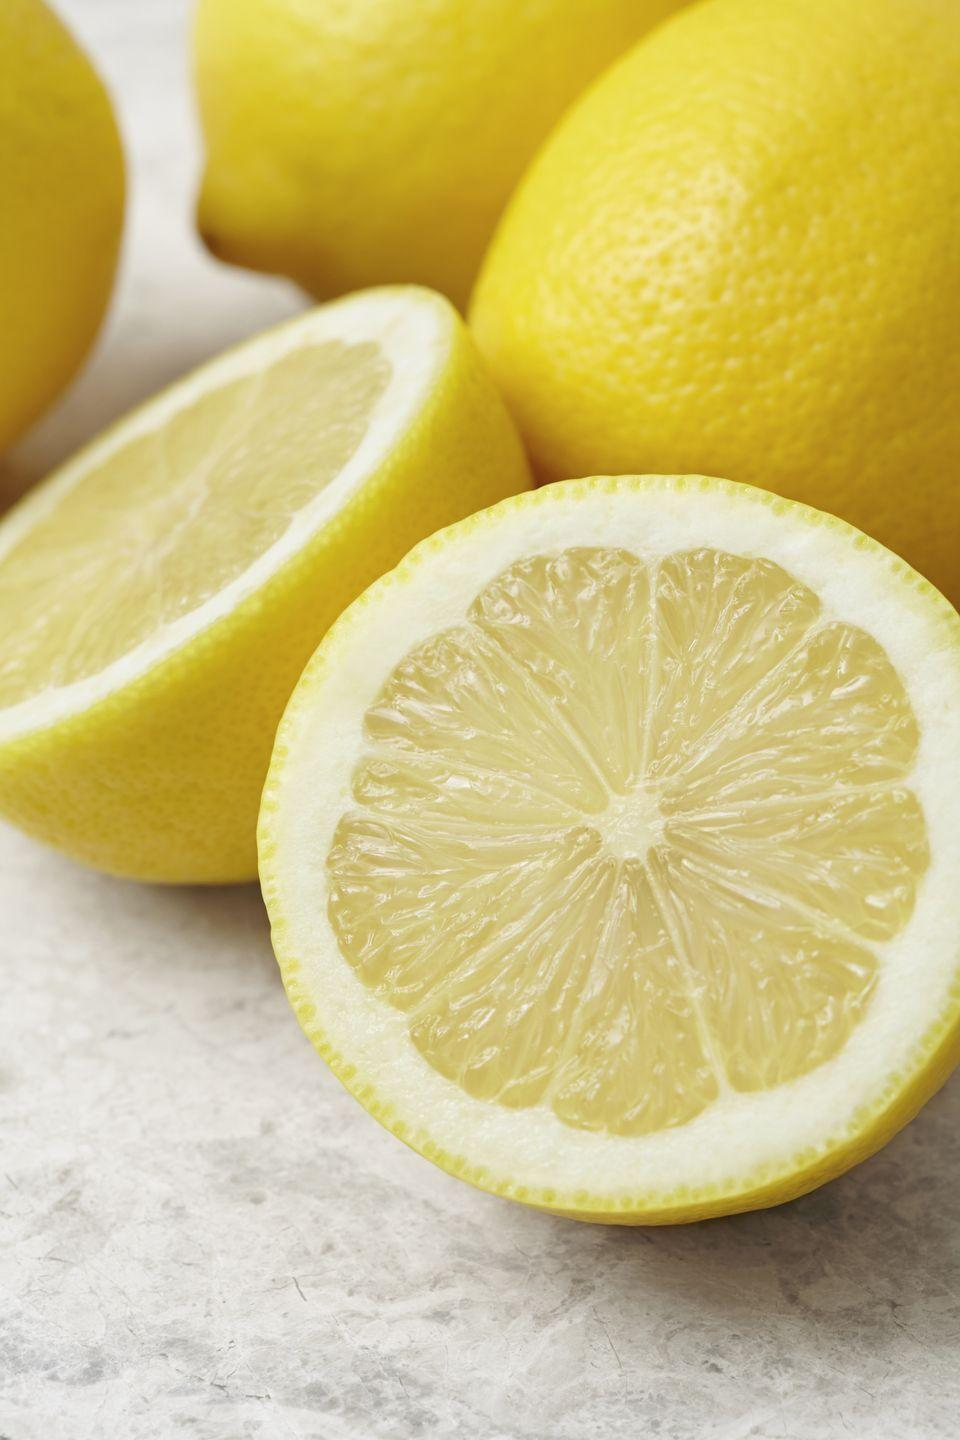 """<p>To fight winter dryness, try a lemon juice and <a href=""""https://www.womansday.com/health-fitness/nutrition/advice/a2617/healthy-cooking-oilsexplained-123271/"""" rel=""""nofollow noopener"""" target=""""_blank"""" data-ylk=""""slk:olive oil"""" class=""""link rapid-noclick-resp"""">olive oil</a> mixture in your hair. """"The acidity in lemon juice helps rid your scalp of any loose, dry flakes of skin, while the olive oil moisturizes the [newly exposed] skin on your head,"""" Cox says.</p><p><strong>To use:</strong> Mix 2 Tbsp fresh lemon juice, 2 Tbsp olive oil, and 2 Tbsp water, and massage into damp scalp. Let mixture sit for 20 minutes, then rinse and shampoo hair. Treatment can be applied every other week.</p><p><strong>What you'll need:</strong> Olive oil ($9, <a href=""""https://www.amazon.com/Pompeian-Classic-Pure-Olive-Ounce/dp/B01E7OFT3C/ref=sr_1_2_sspa?keywords=olive+oil&qid=1566590133&s=grocery&sr=1-2-spons&psc=1&spLa=ZW5jcnlwdGVkUXVhbGlmaWVyPUEyVEQzVFRLNkdTMTFOJmVuY3J5cHRlZElkPUEwNTA1NzMyM1ZVMkk3MUpOUUI5QyZlbmNyeXB0ZWRBZElkPUEwNDU1MTE1MjdIUDJUQVJLS1IzRiZ3aWRnZXROYW1lPXNwX2F0ZiZhY3Rpb249Y2xpY2tSZWRpcmVjdCZkb05vdExvZ0NsaWNrPXRydWU%3D&tag=syn-yahoo-20&ascsubtag=%5Bartid%7C10070.g.2276%5Bsrc%7Cyahoo-us"""" rel=""""nofollow noopener"""" target=""""_blank"""" data-ylk=""""slk:amazon.com"""" class=""""link rapid-noclick-resp"""">amazon.com</a>)</p>"""